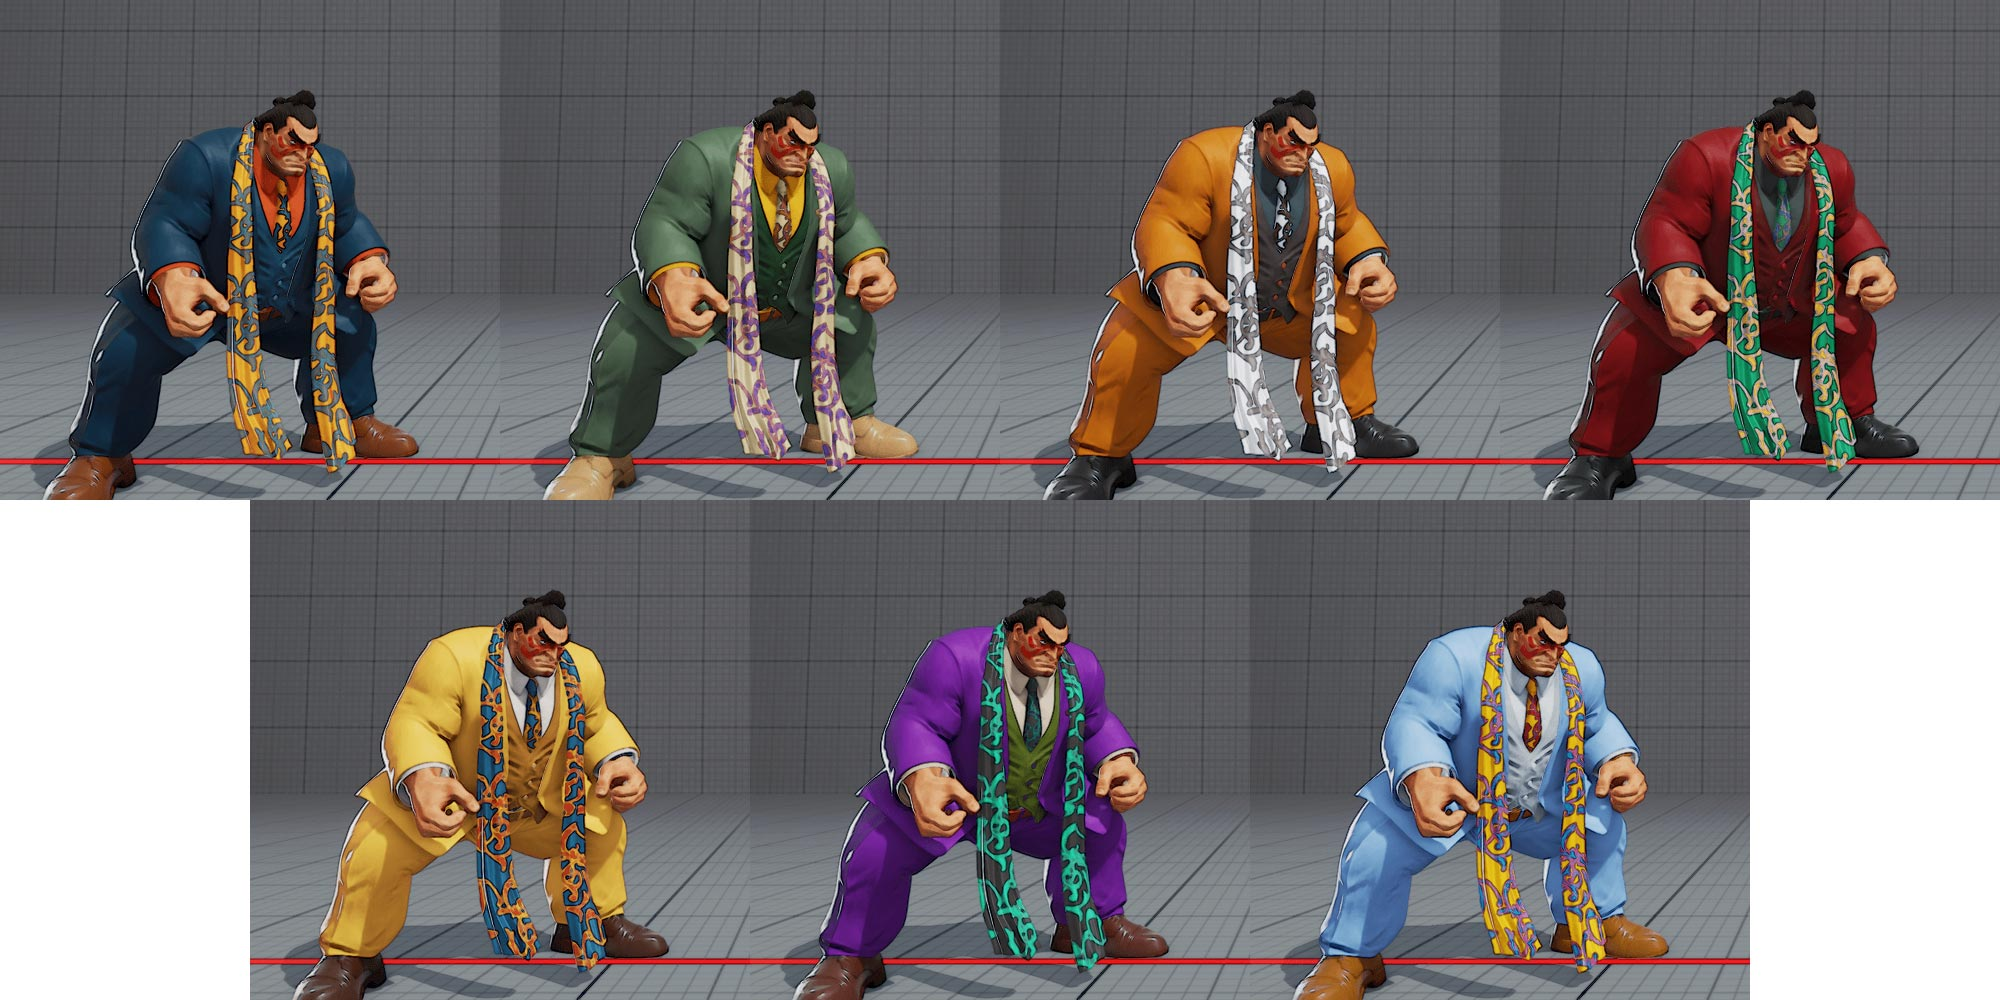 Honda Costumes 8 out of 20 image gallery